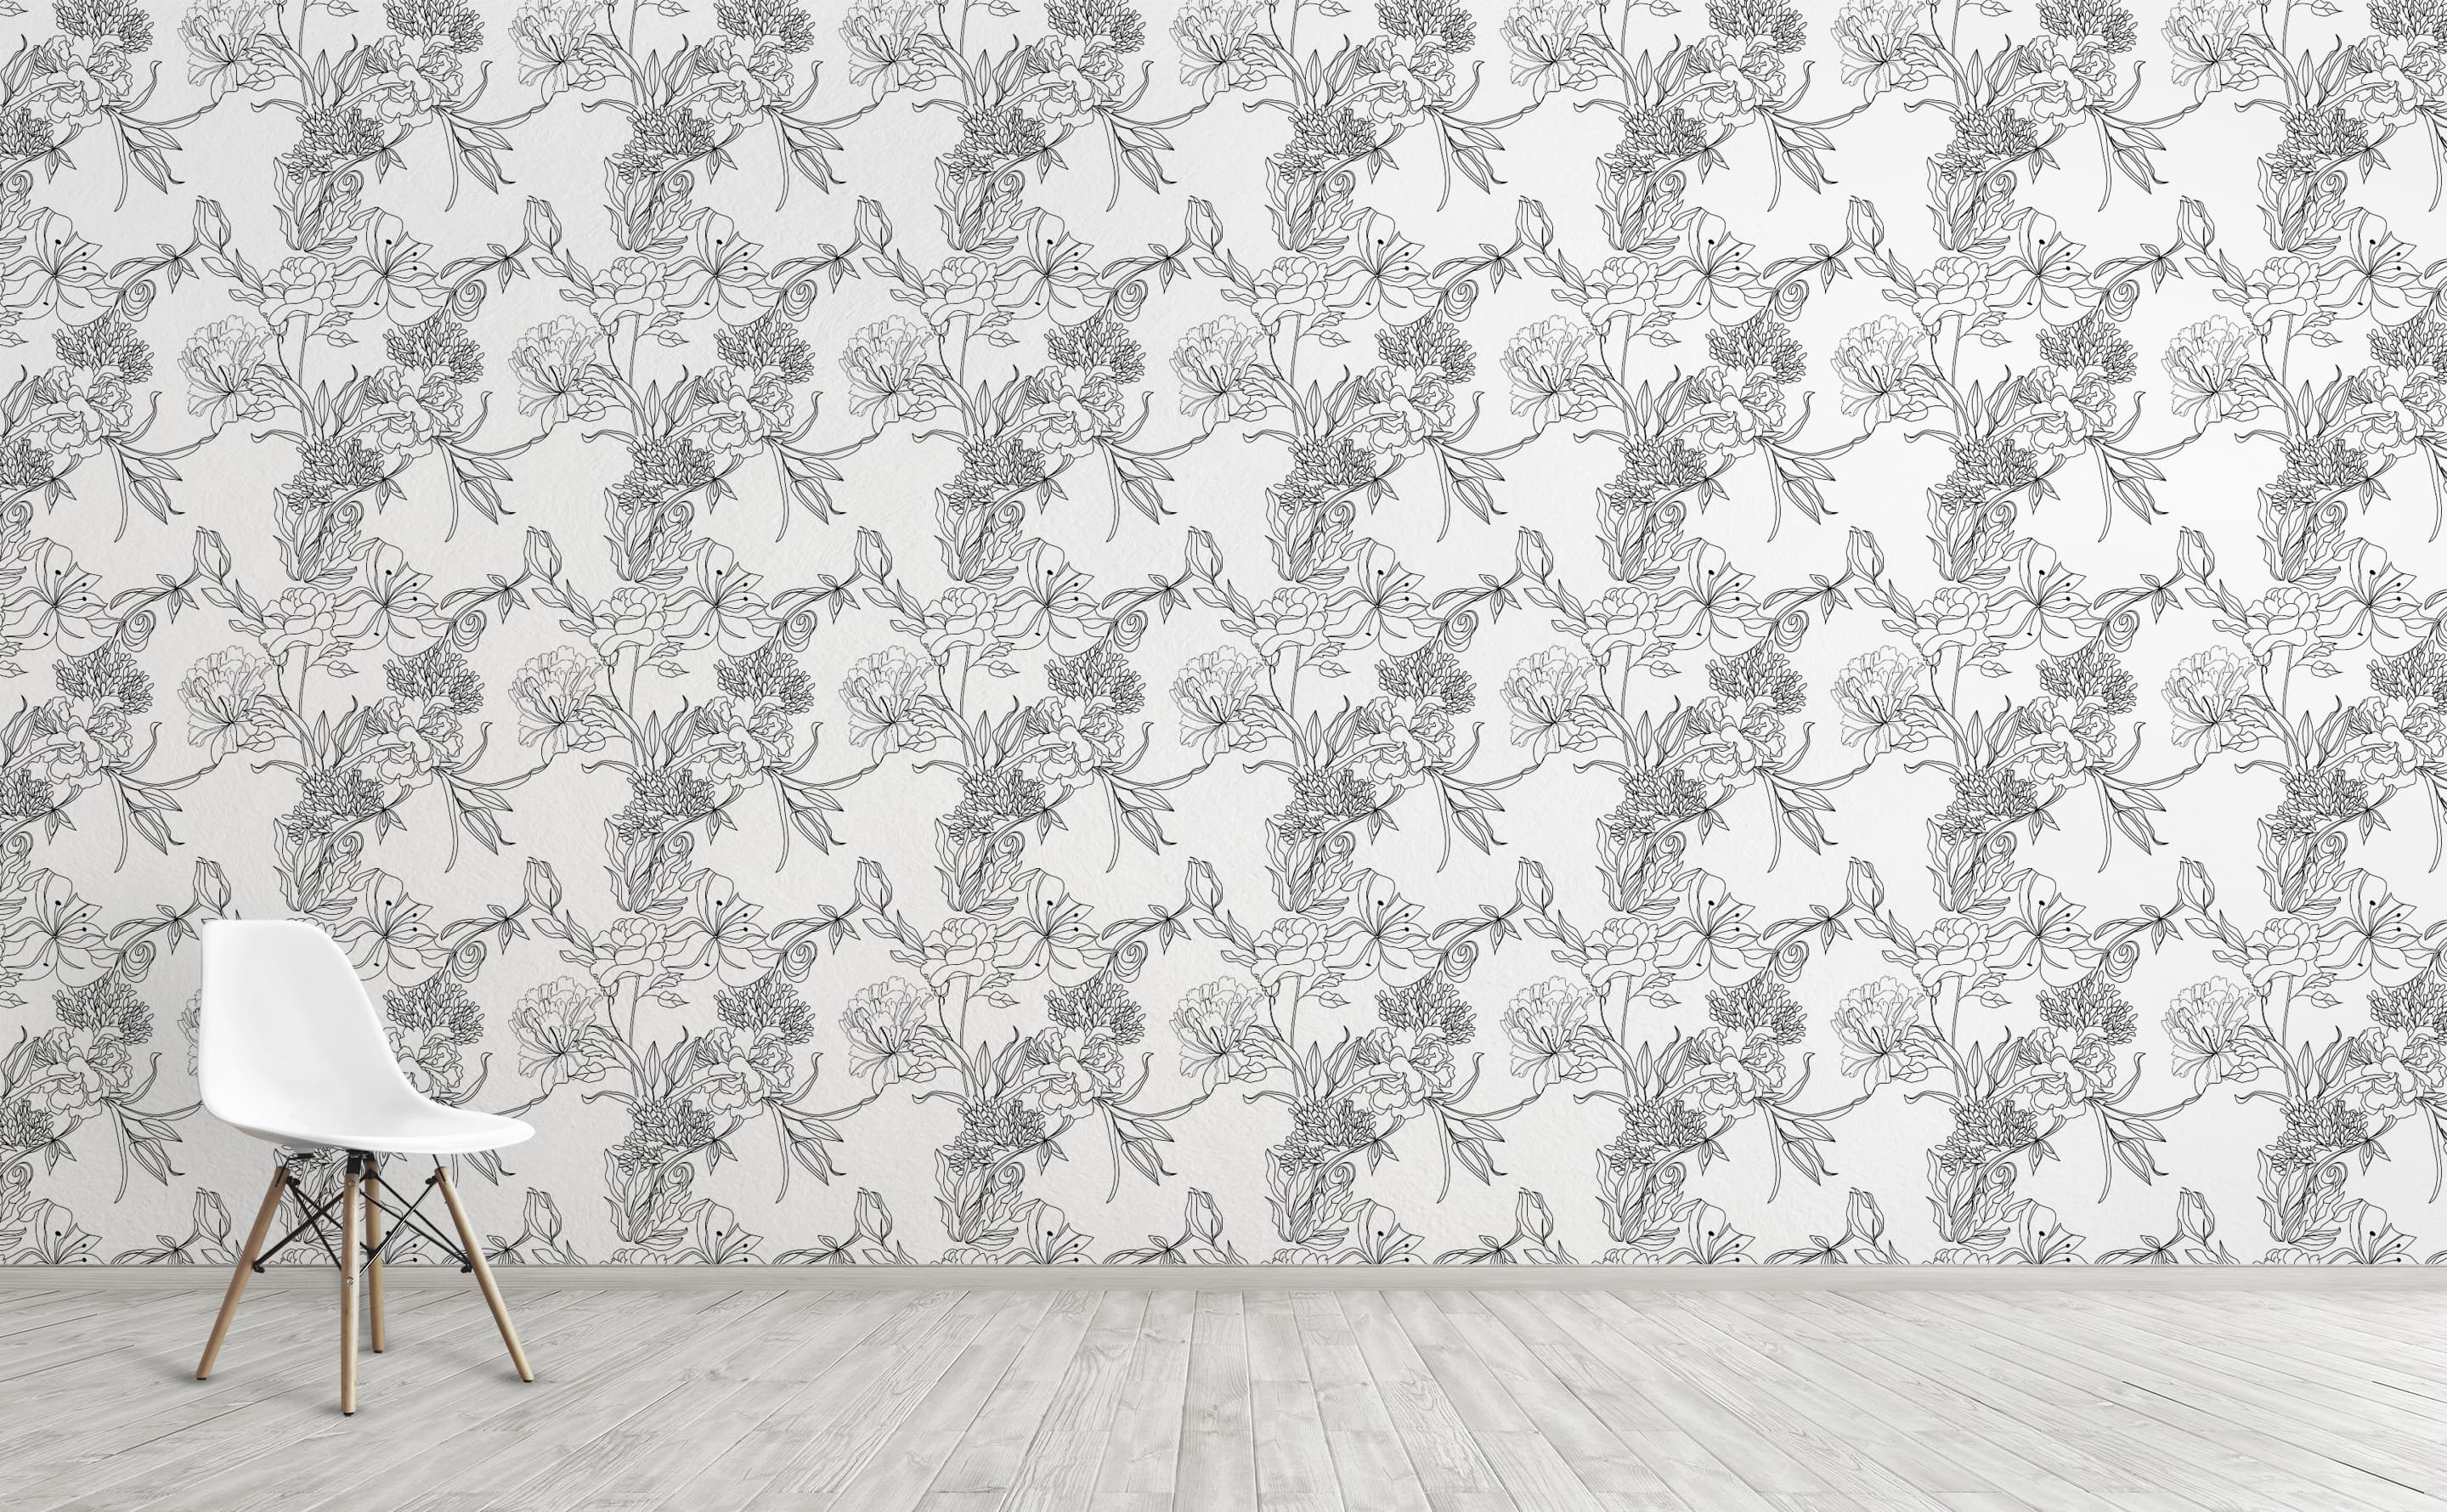 Black And White Floral Pattern Wallpaper For Walls Sketch Floral